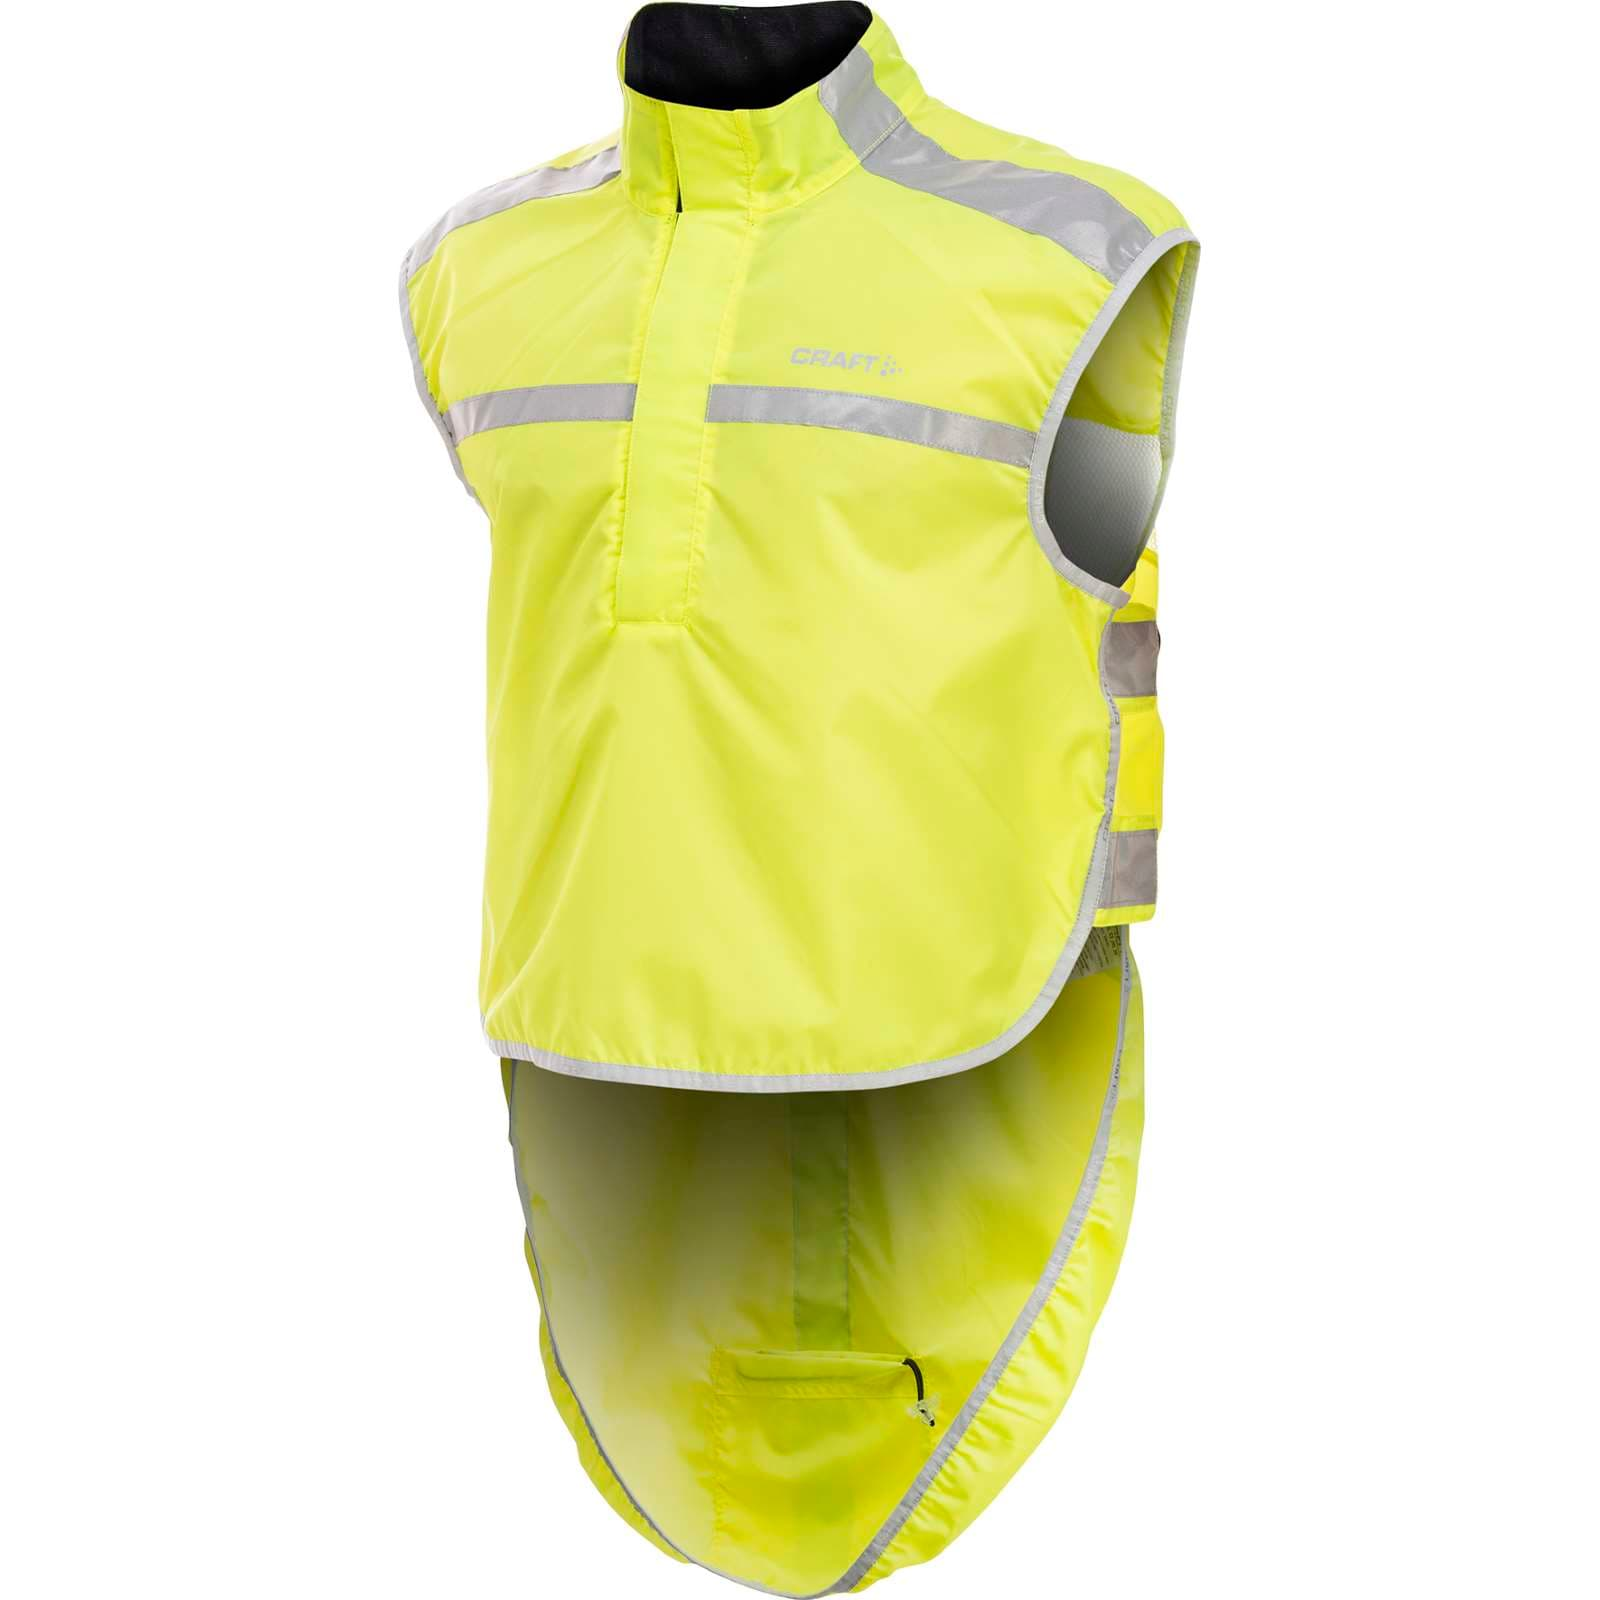 aa7ba87c Buy Craft Bike Visibility Vest from Outnorth